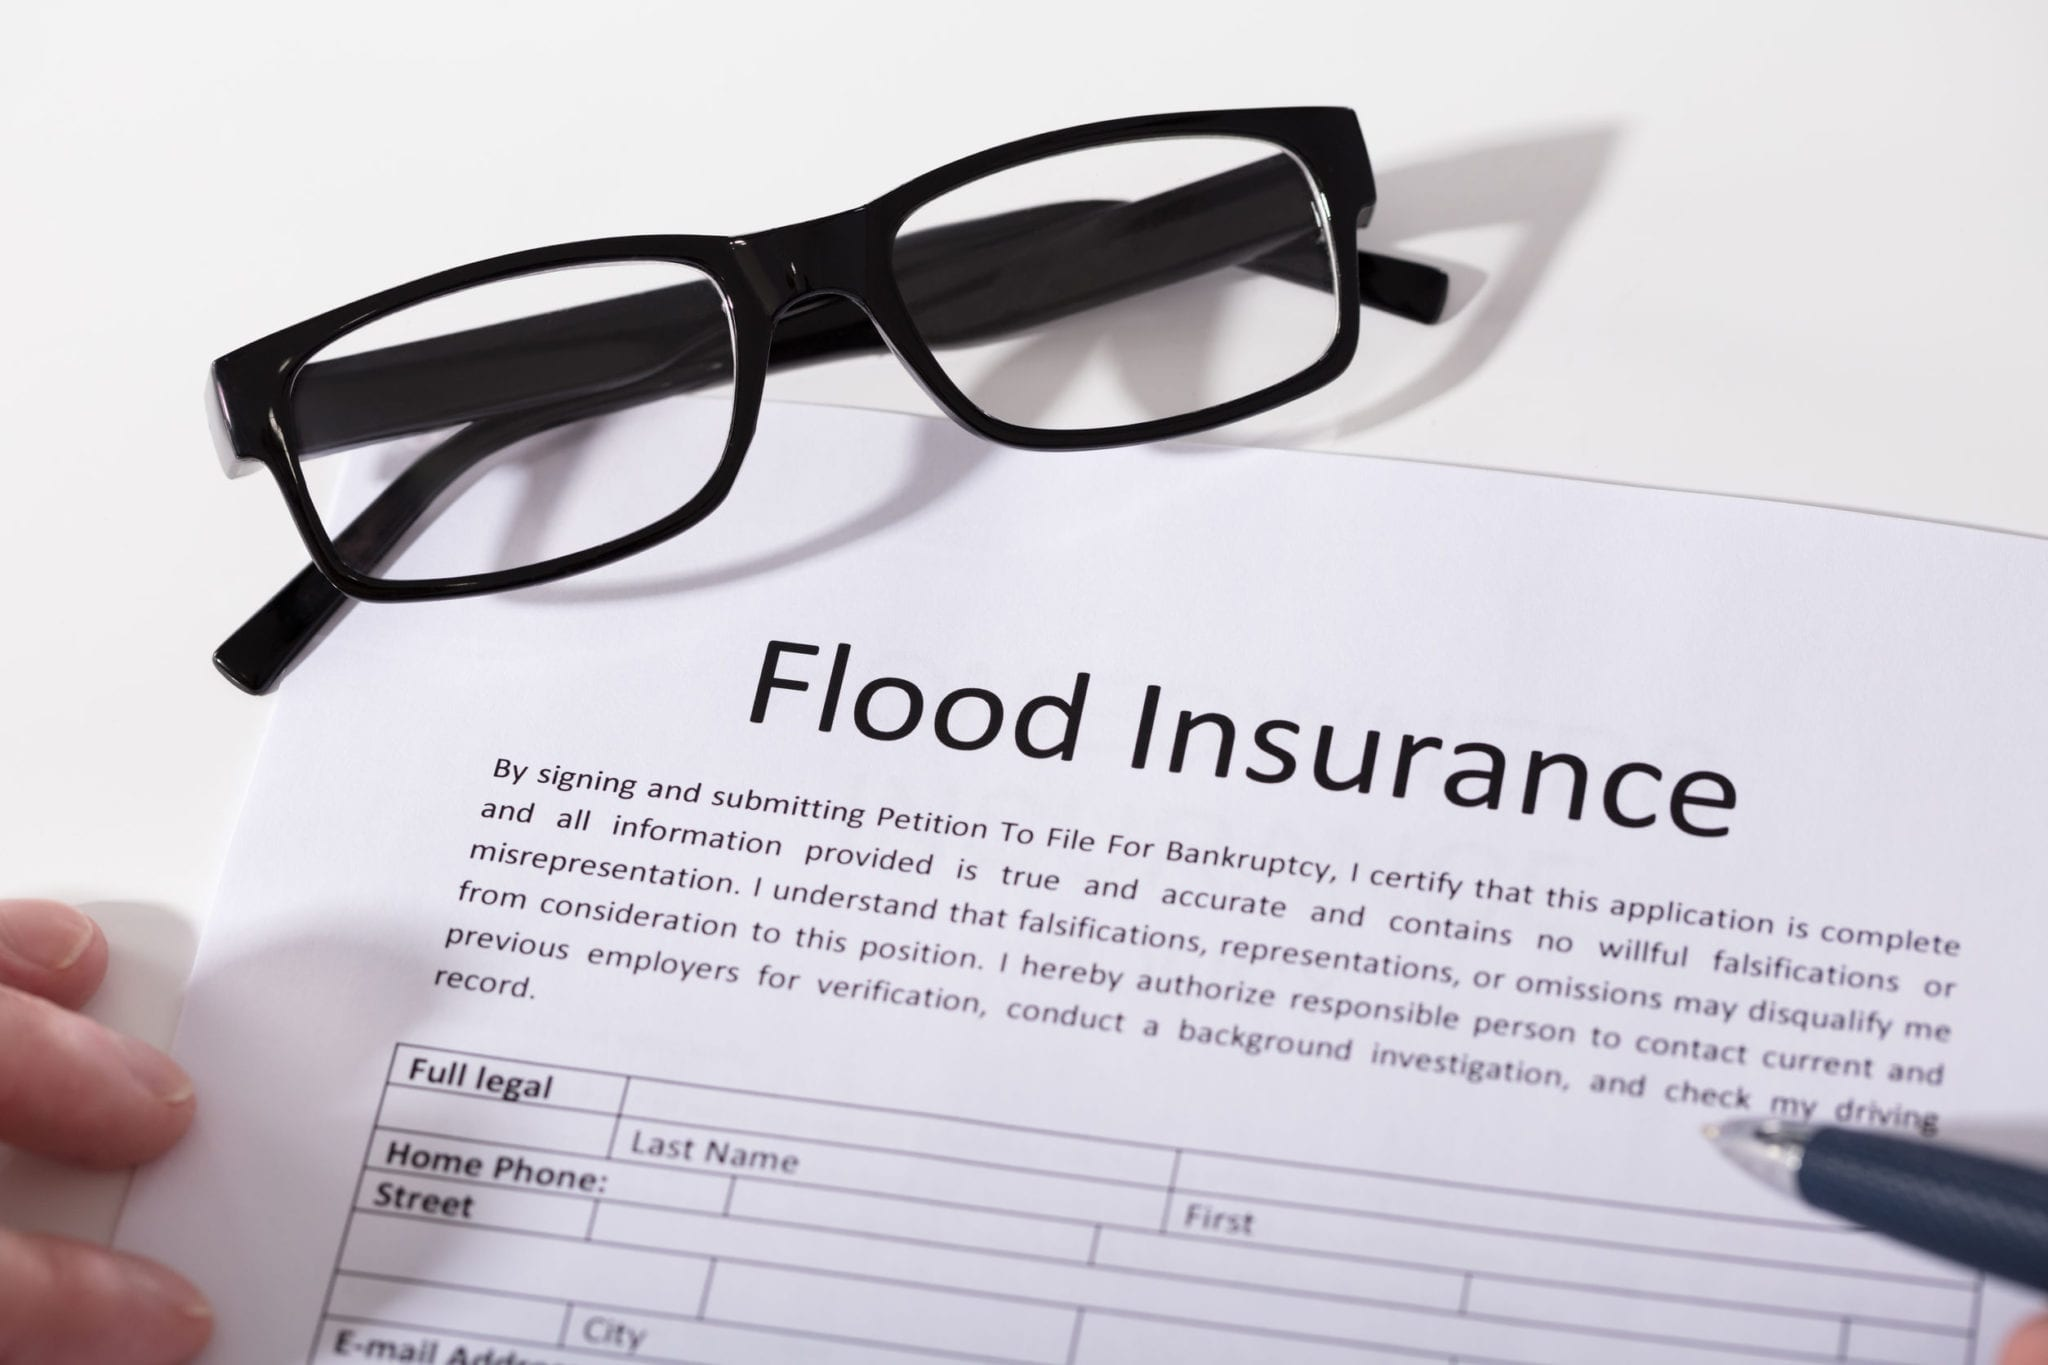 So, what are the costs of a Texas flood insurance policy?